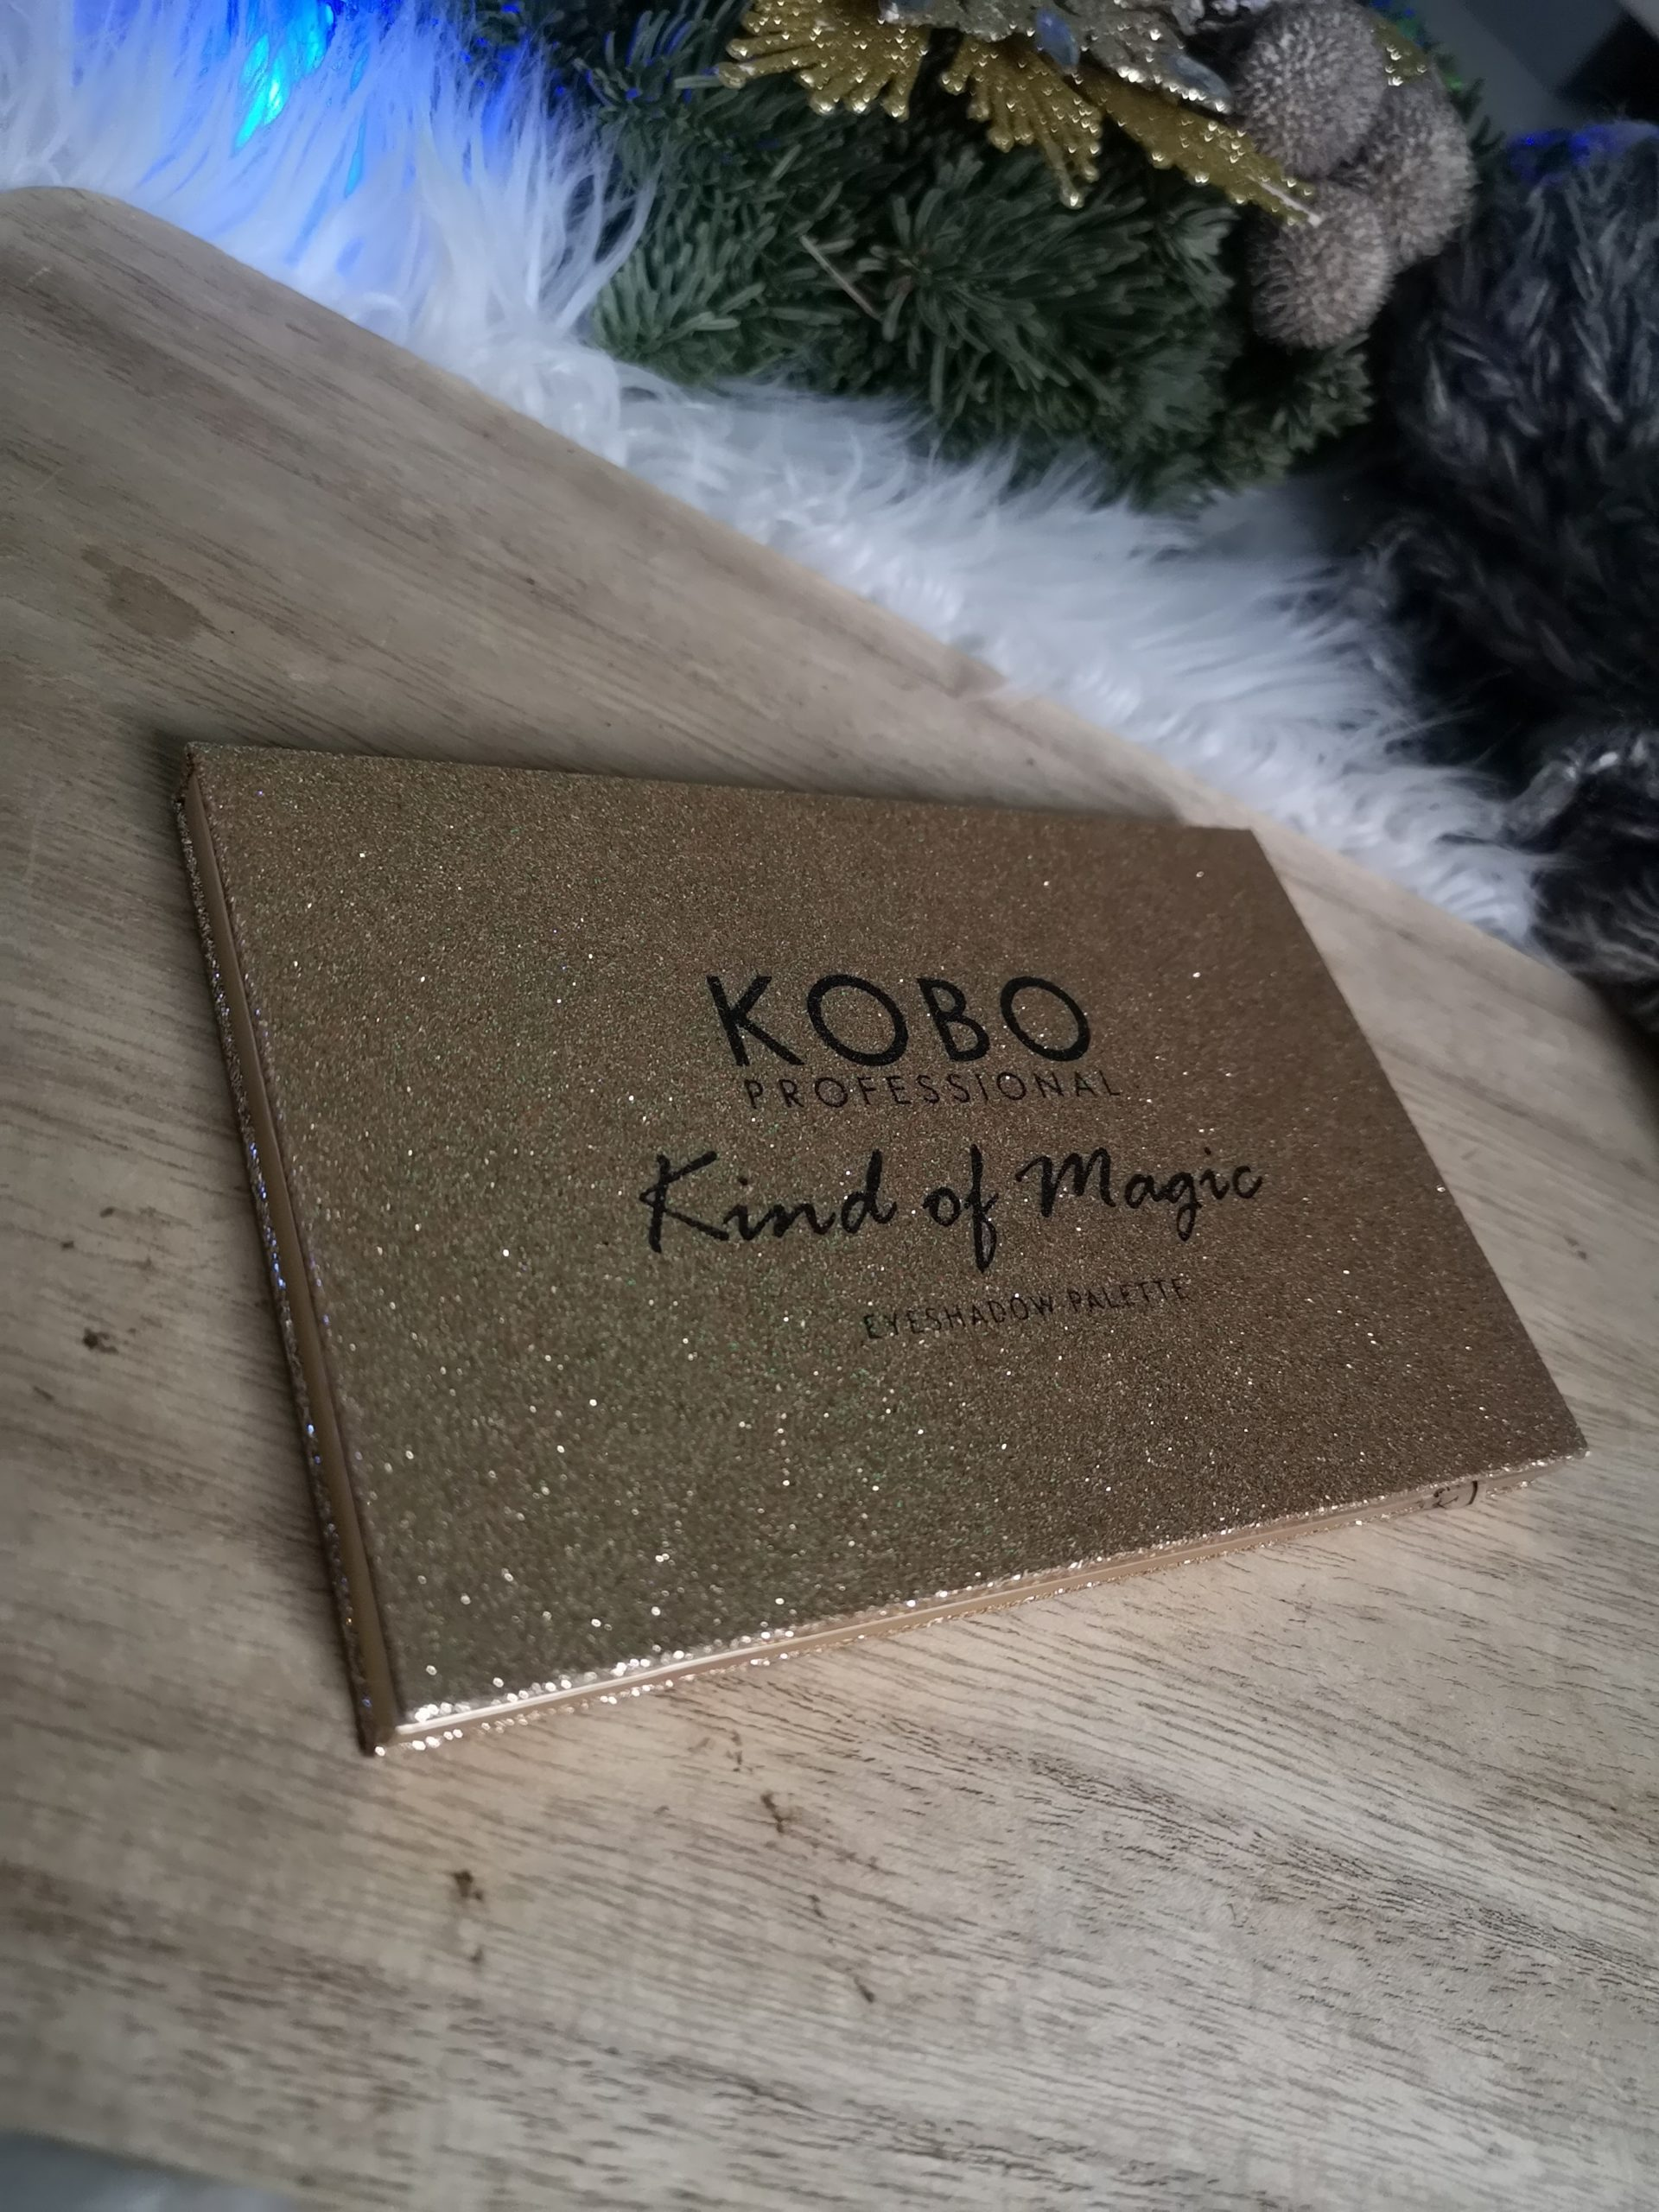 KOBO PROFESSIONAL PALETA CIENI KIND OF MAGIC